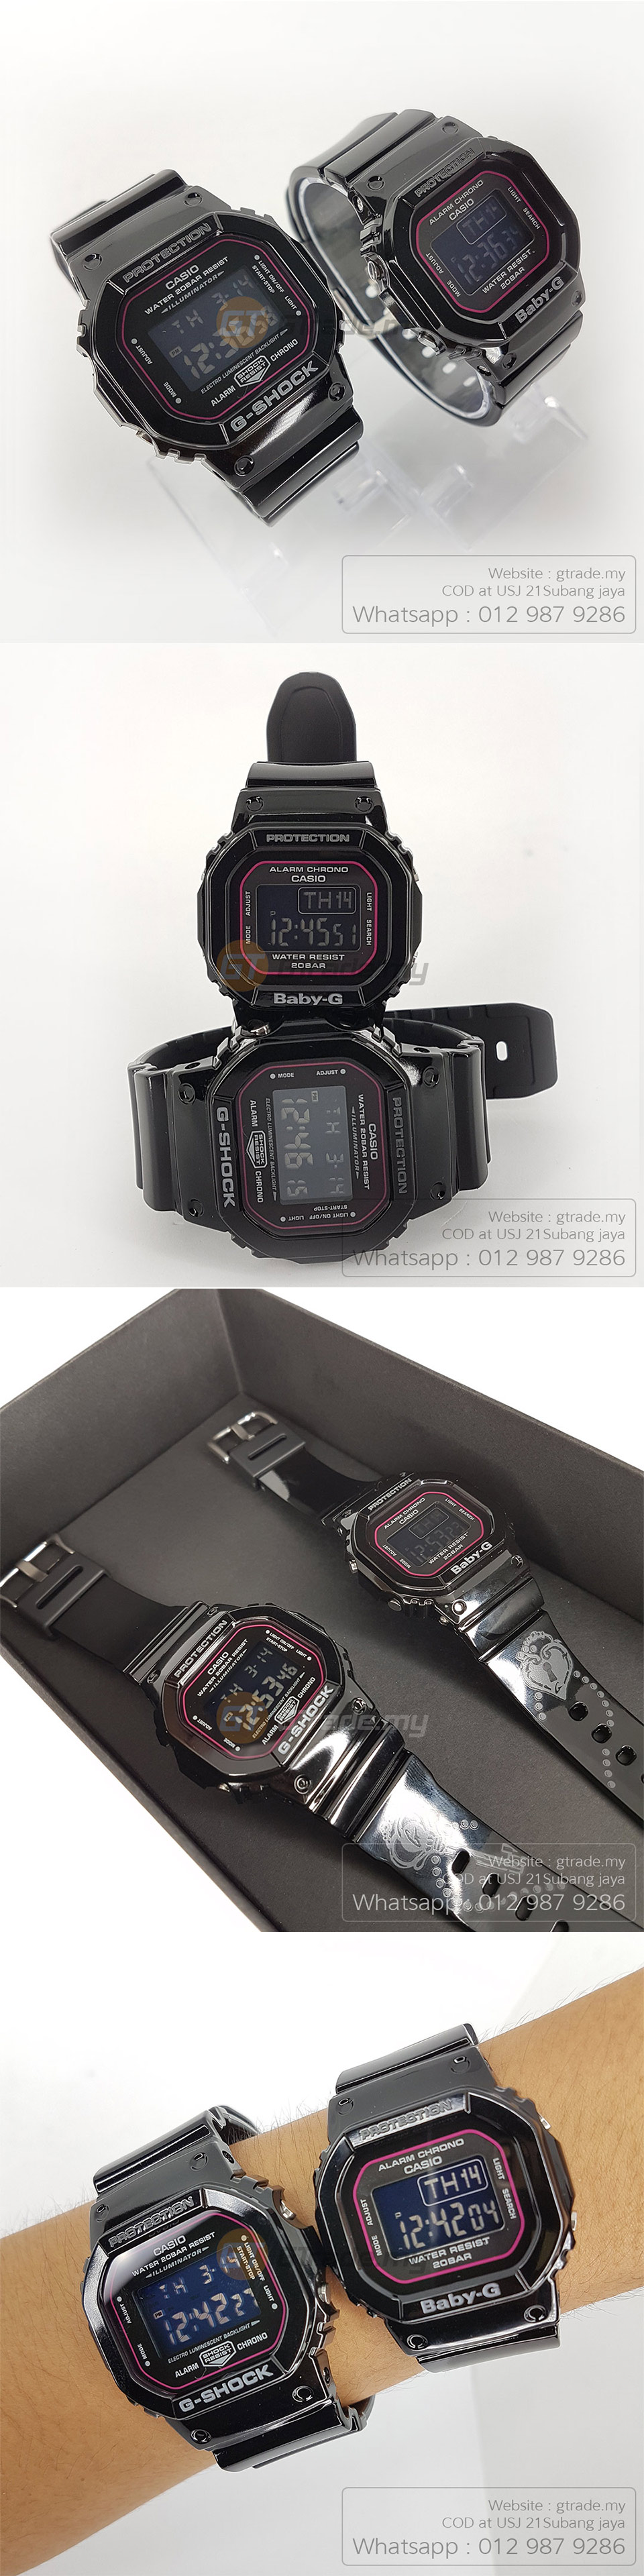 casio-g-shock-baby-g-couple-watch-special-pair-collection-slv-18b-1d-r